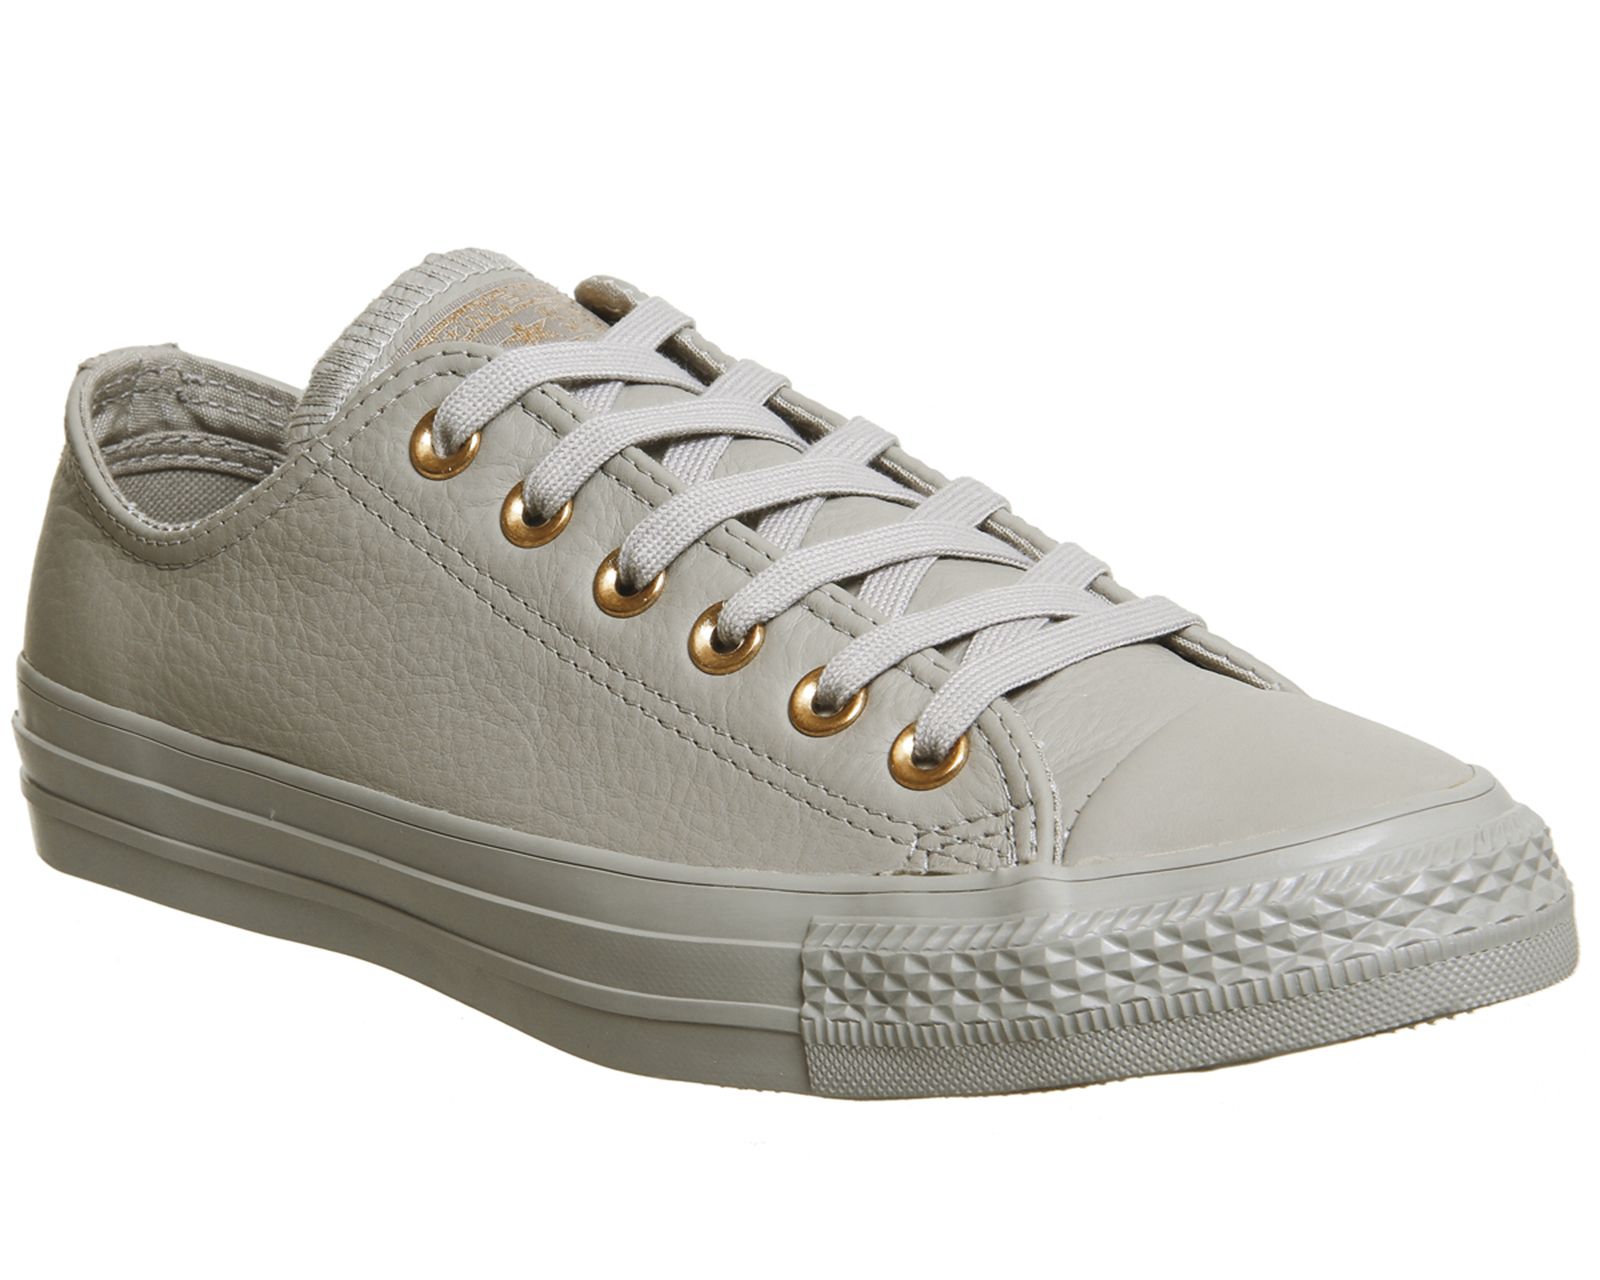 94fcea8221a9 Sentinel Womens Converse All star Low Leather Trainers MALTED ROSE GOLD  EXCLUSIVE Trainer